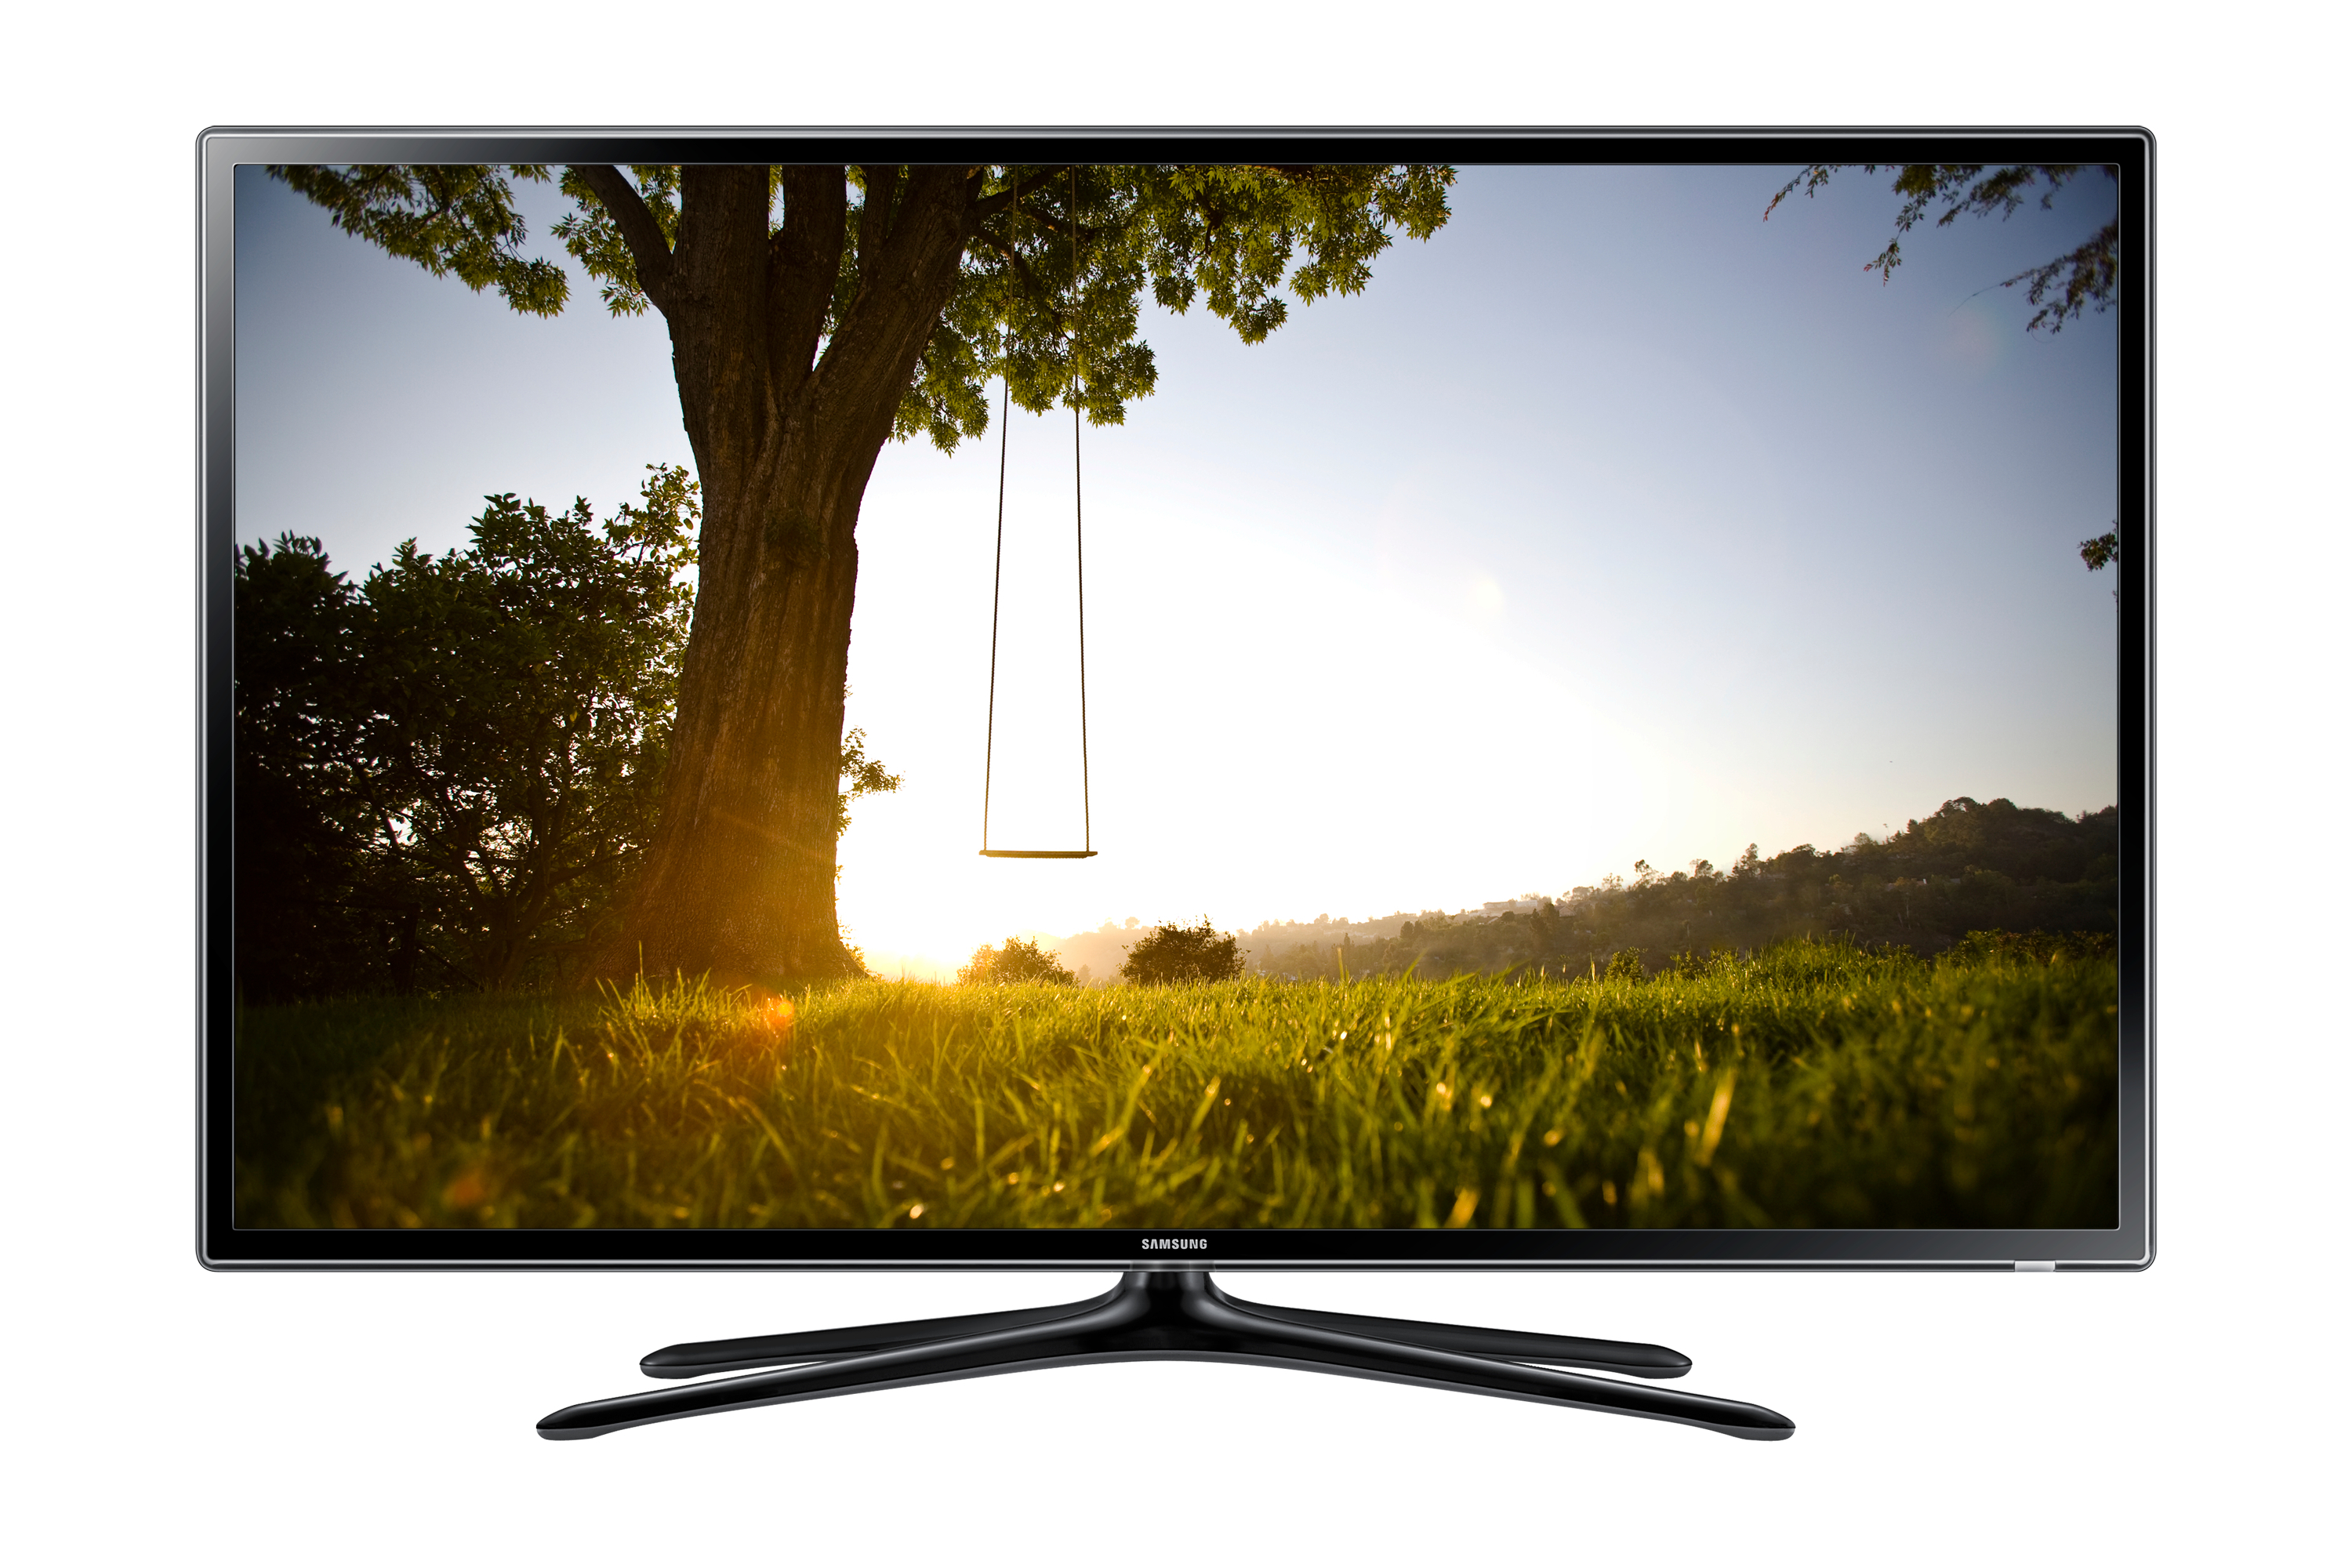 samsung 40F6170 3D LED TV